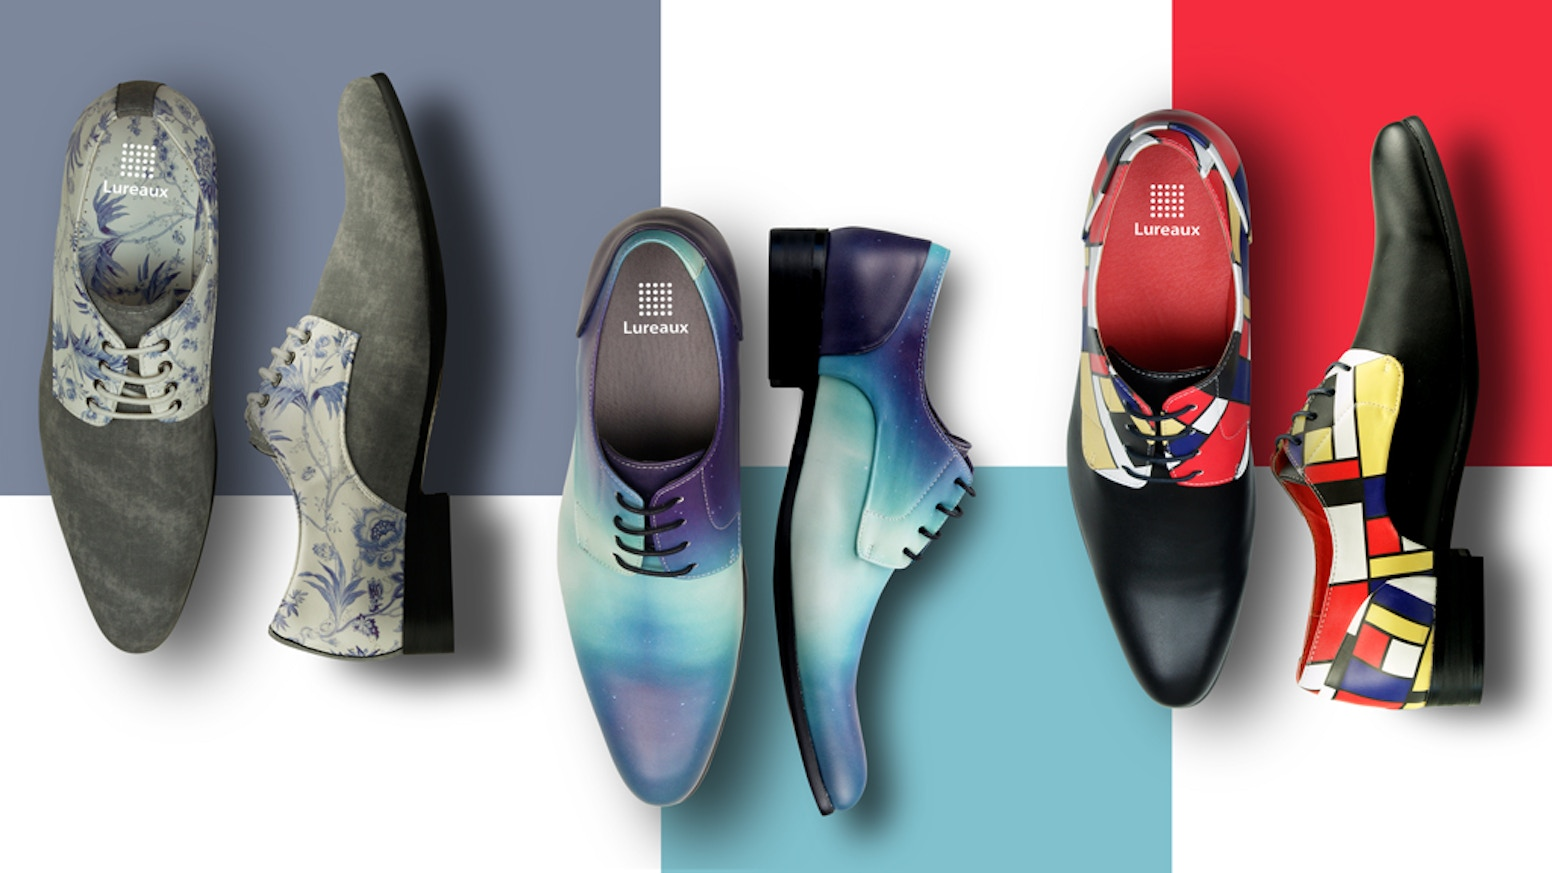 Best footwear deal ever on Kickstarter. Colorful, handcrafted & comfortable dress shoes. Look better, pay less!